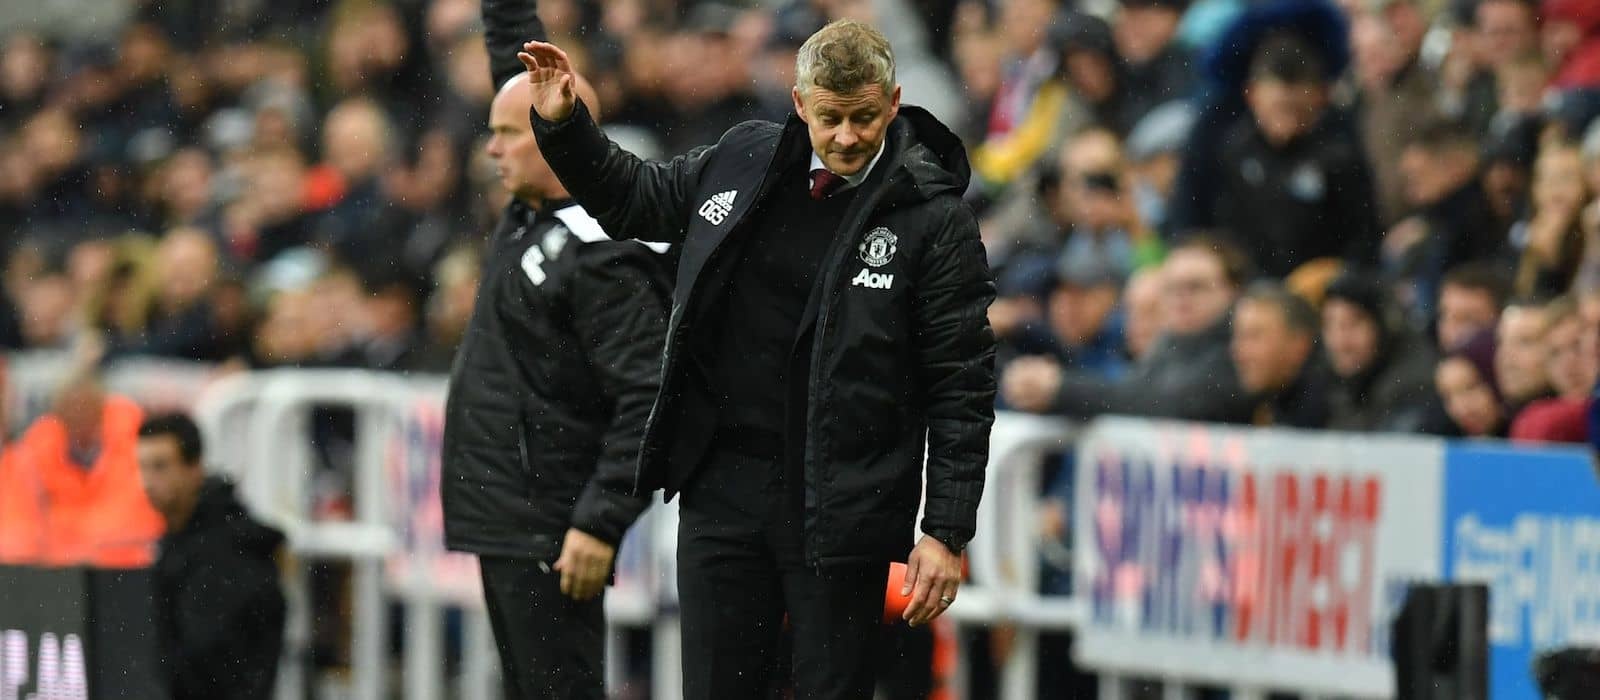 Manchester United fans want Ole Gunnar Solskjaer sacked tomorrow after Newcastle United defeat